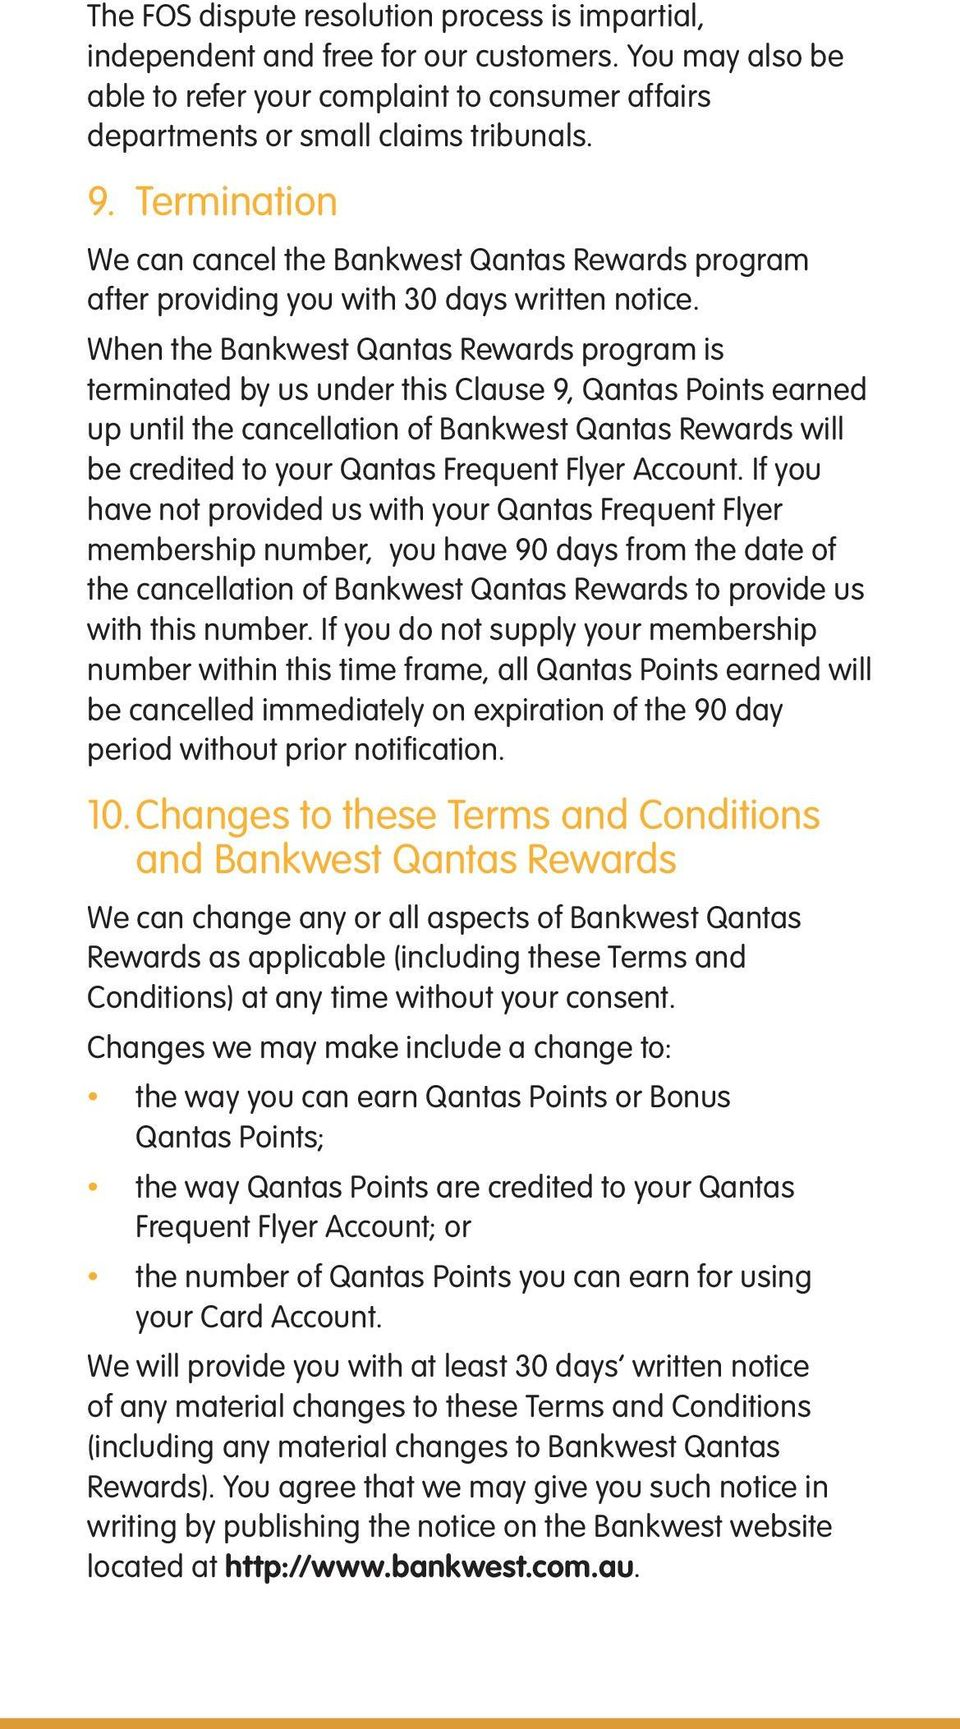 When the Bankwest Qantas Rewards program is terminated by us under this Clause 9, Qantas Points earned up until the cancellation of Bankwest Qantas Rewards will be credited to your Qantas Frequent